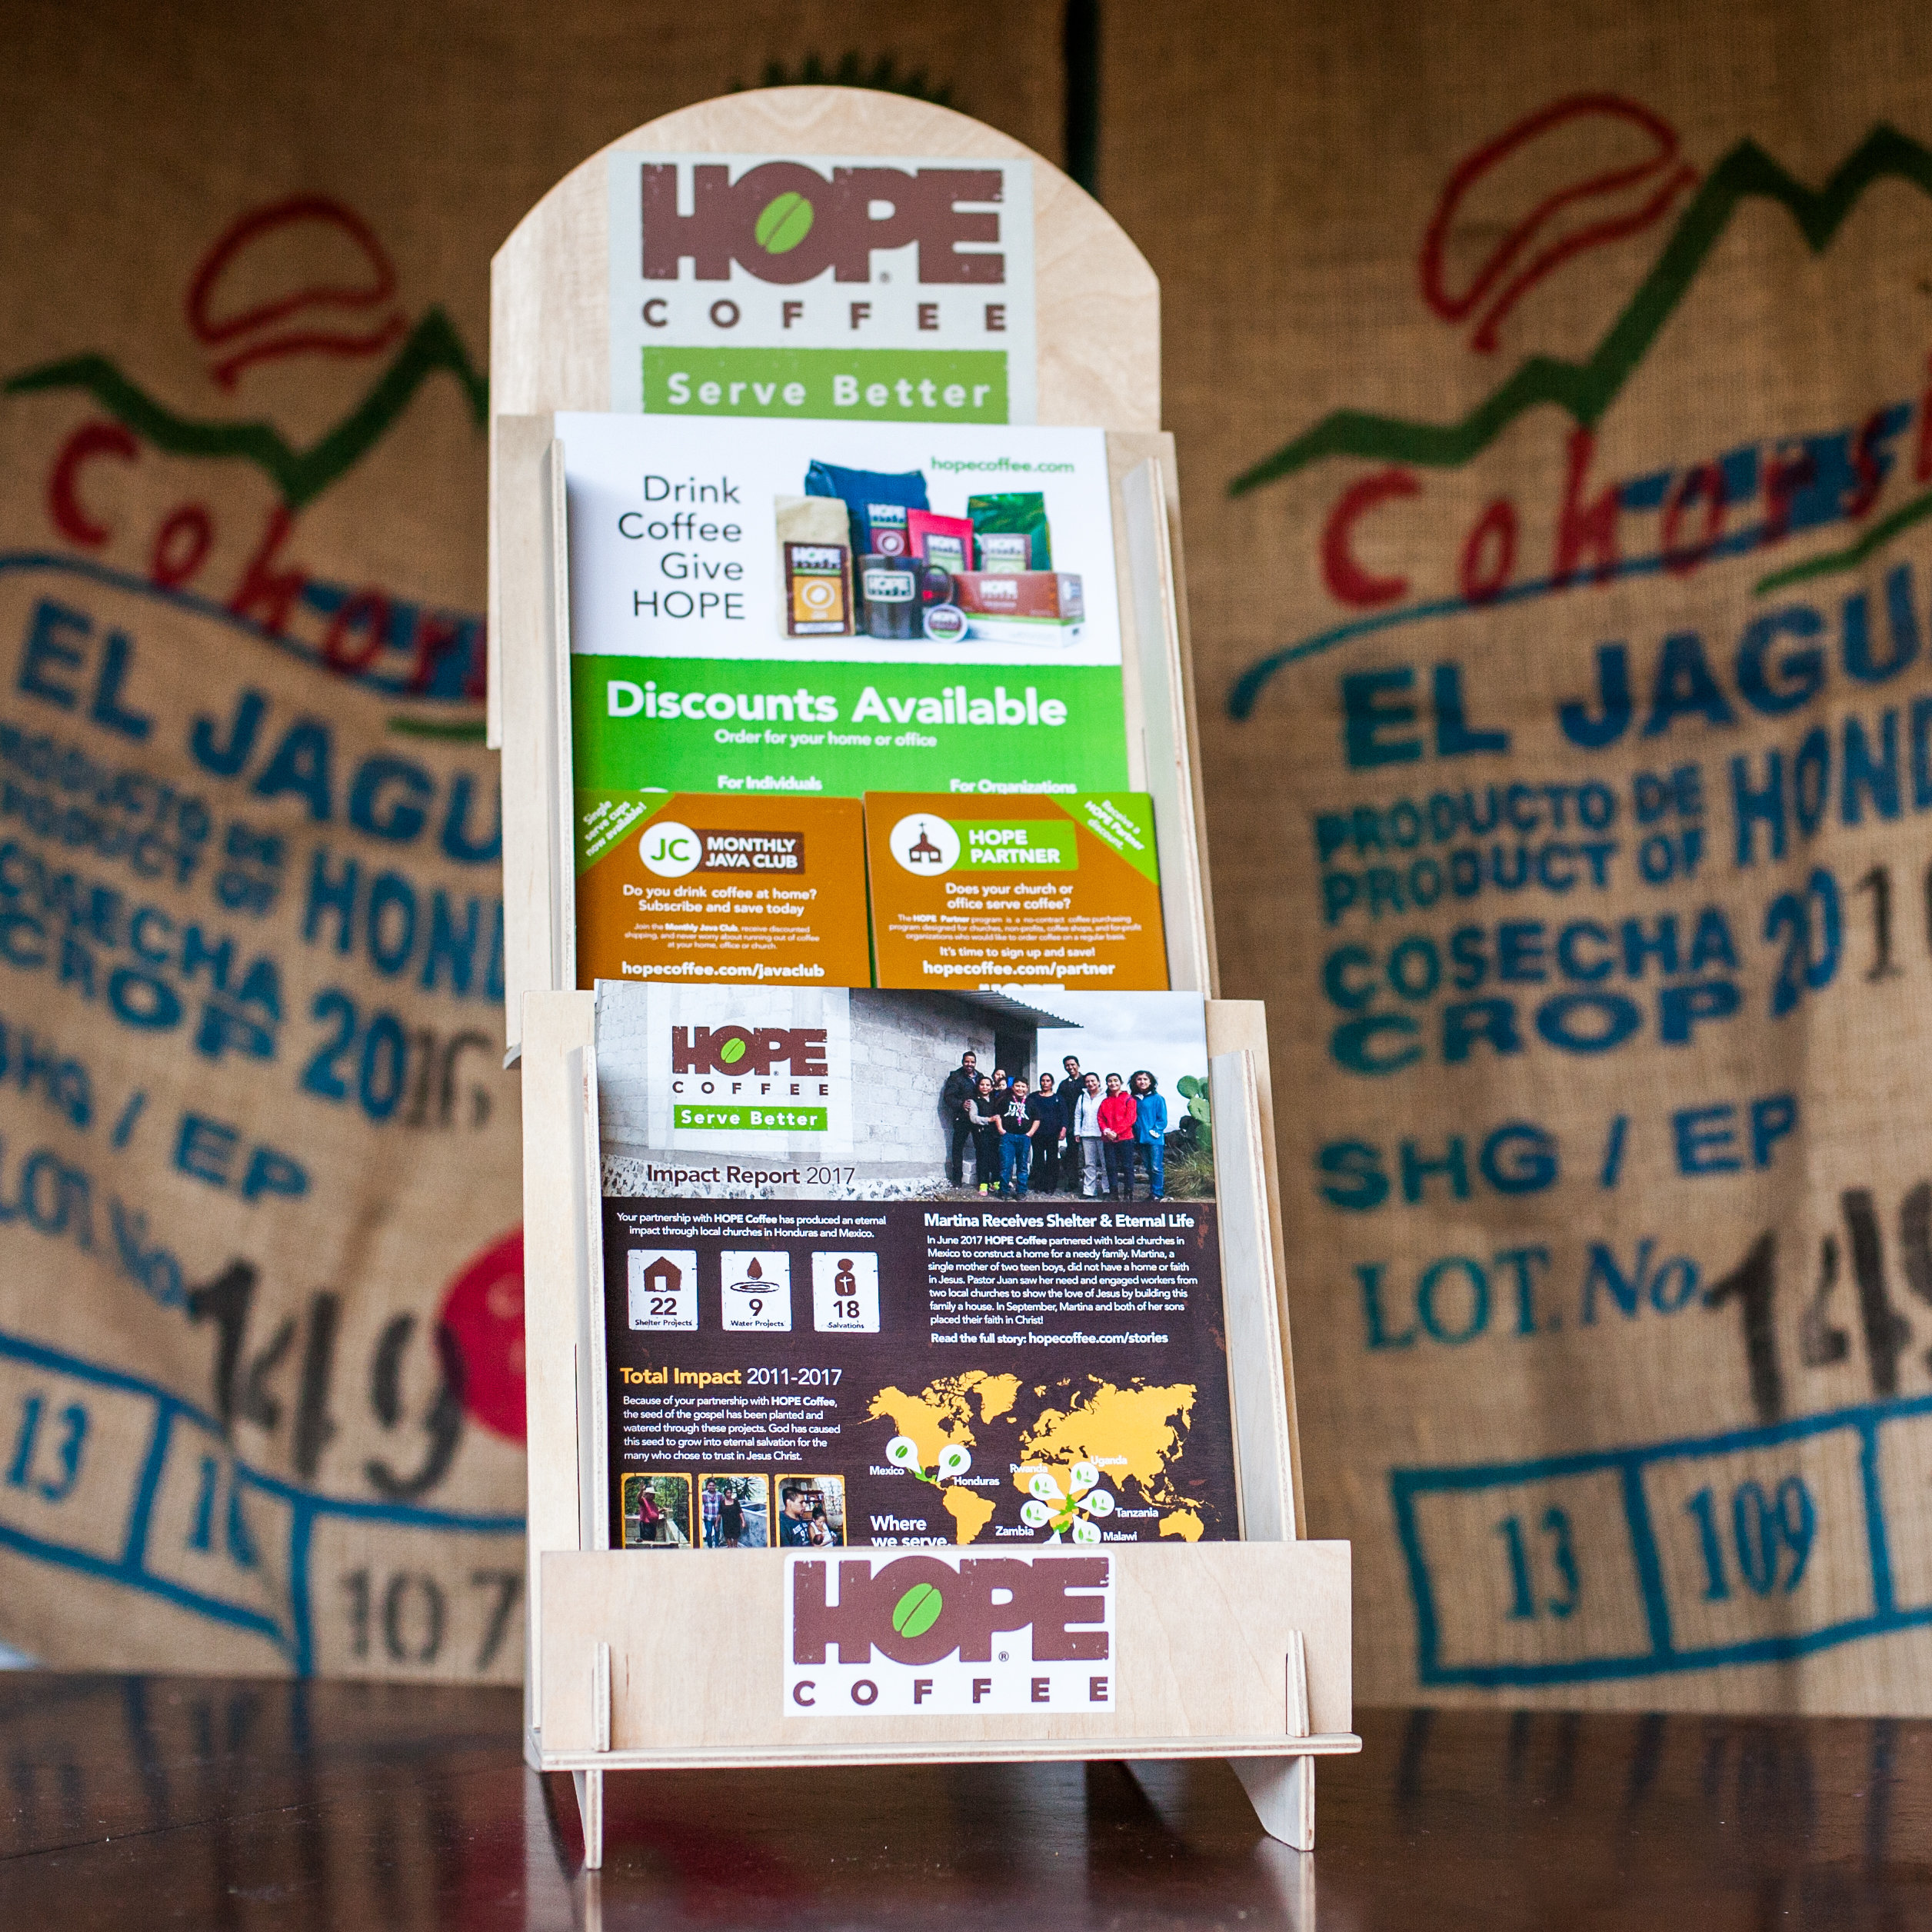 For HOPE Partners: Free HOPE Coffee Display with informational materials MM016